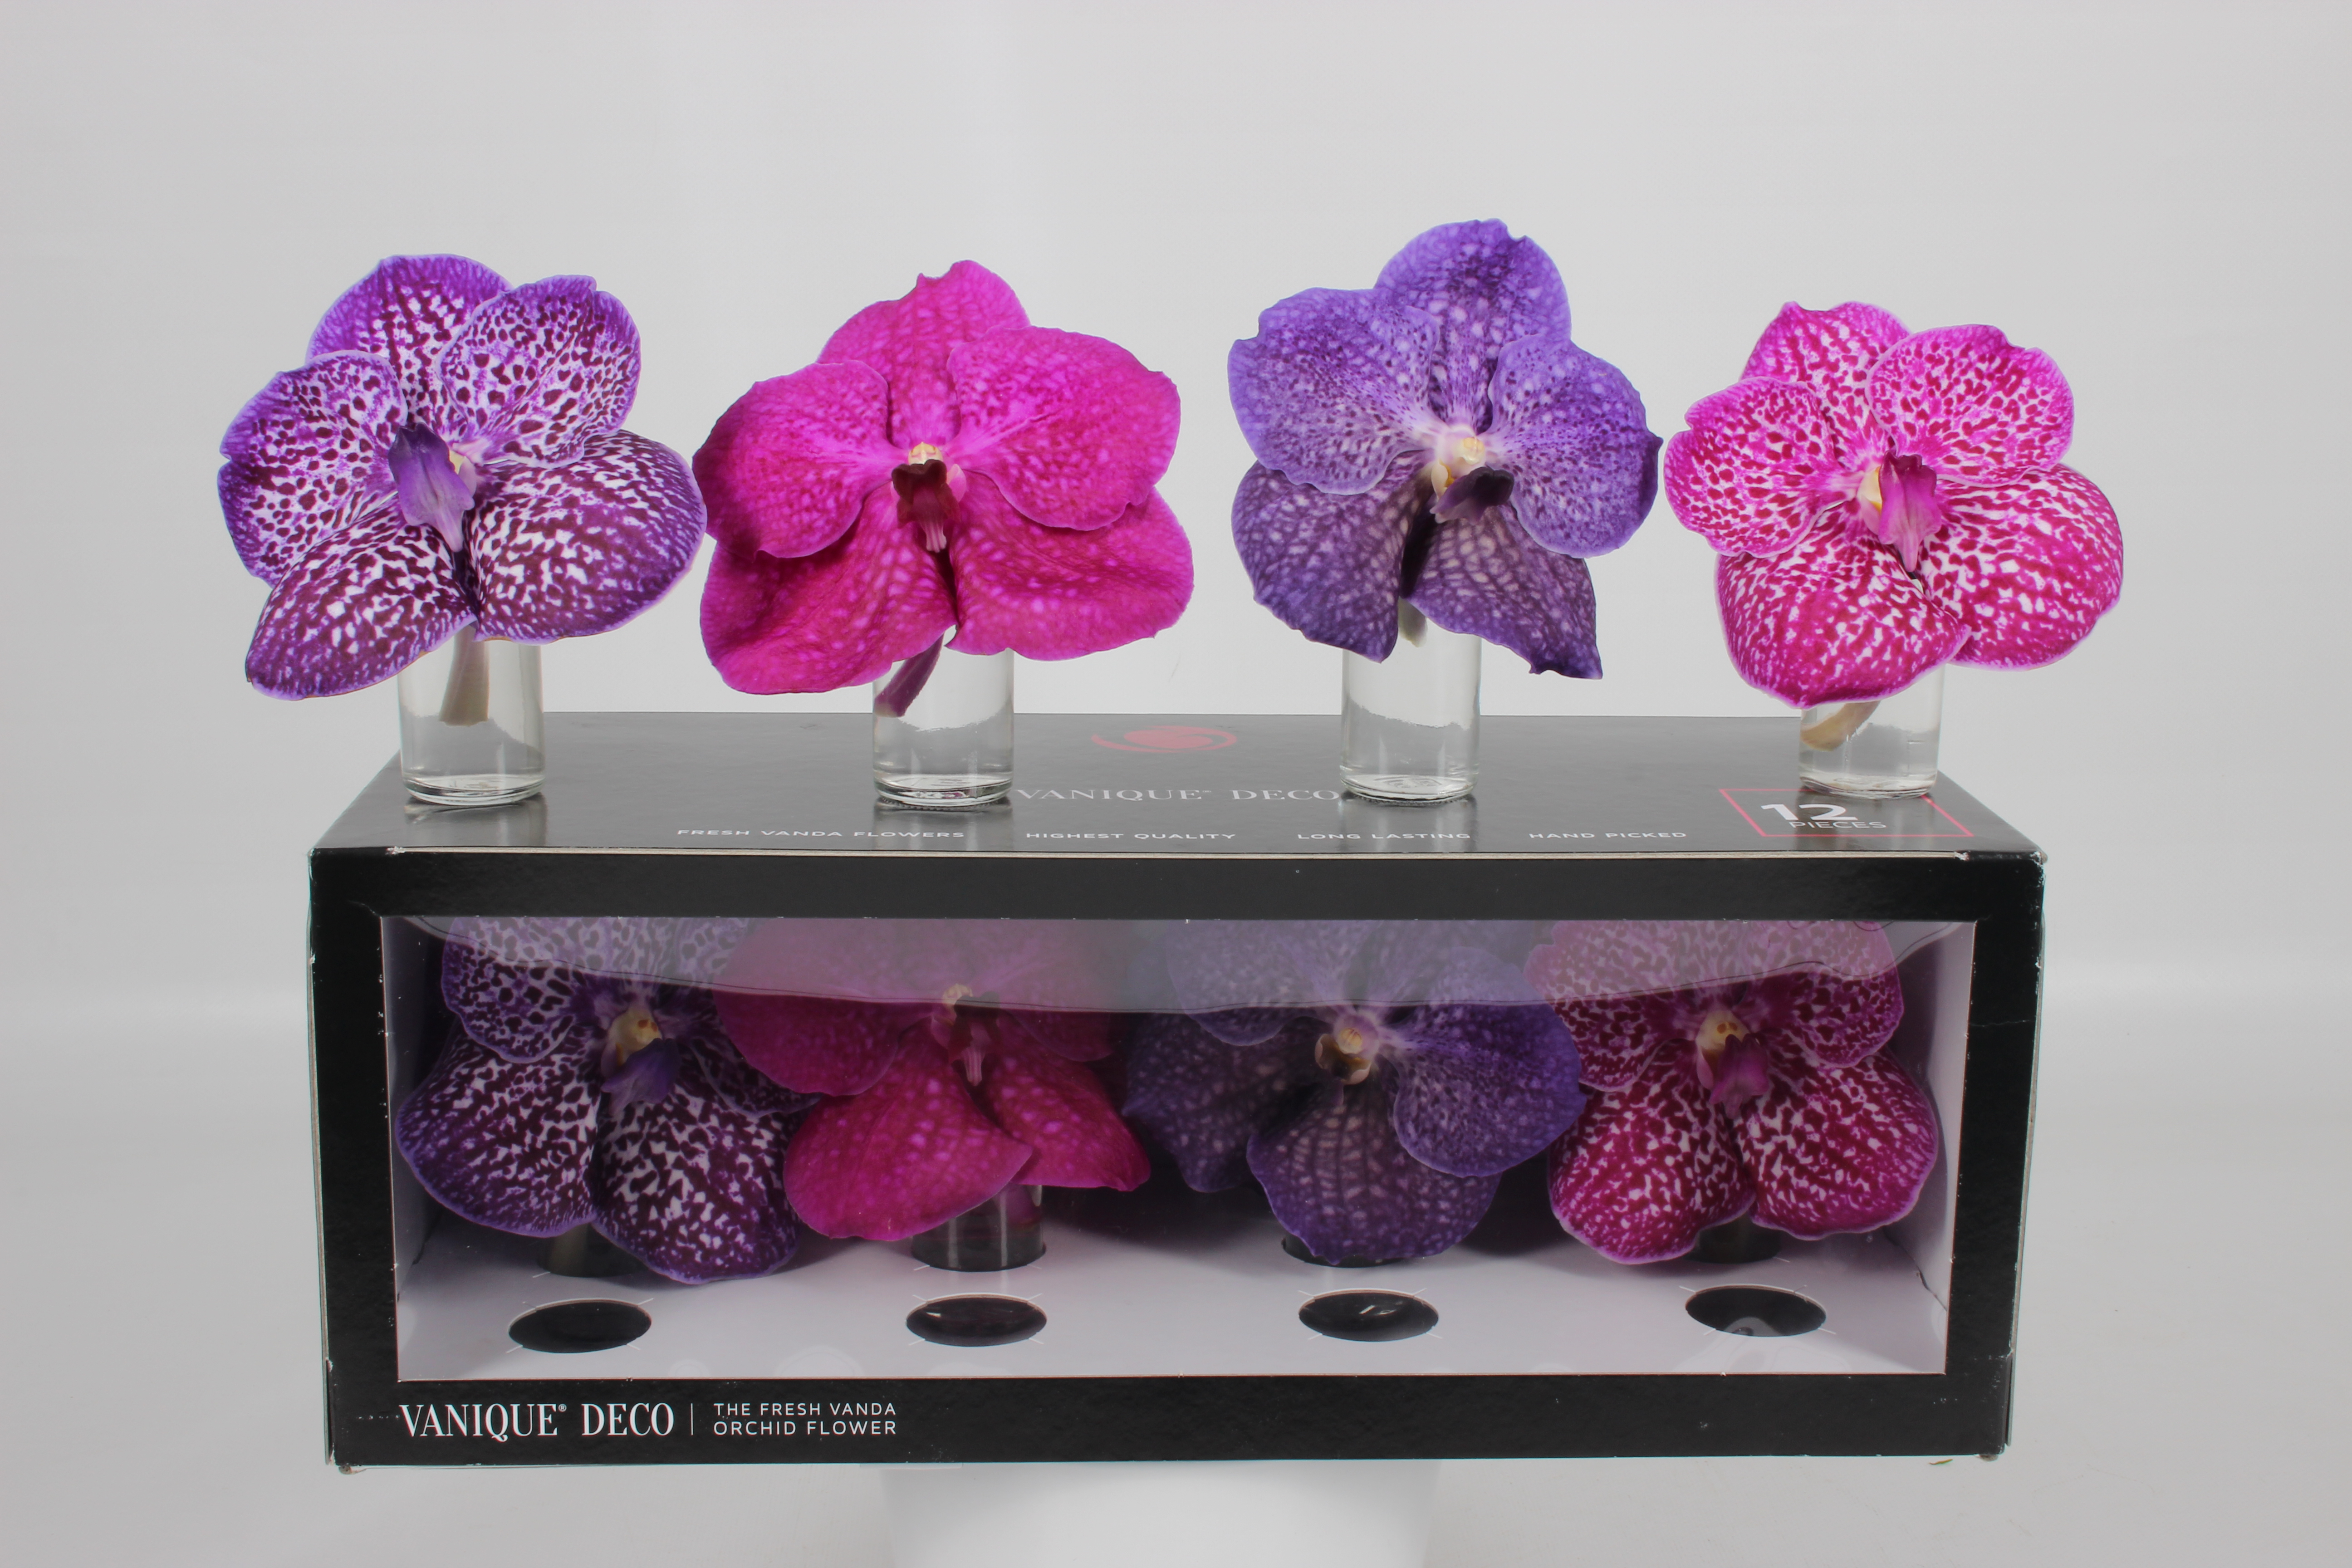 grower of the week anco pure vanda g fresh. Black Bedroom Furniture Sets. Home Design Ideas